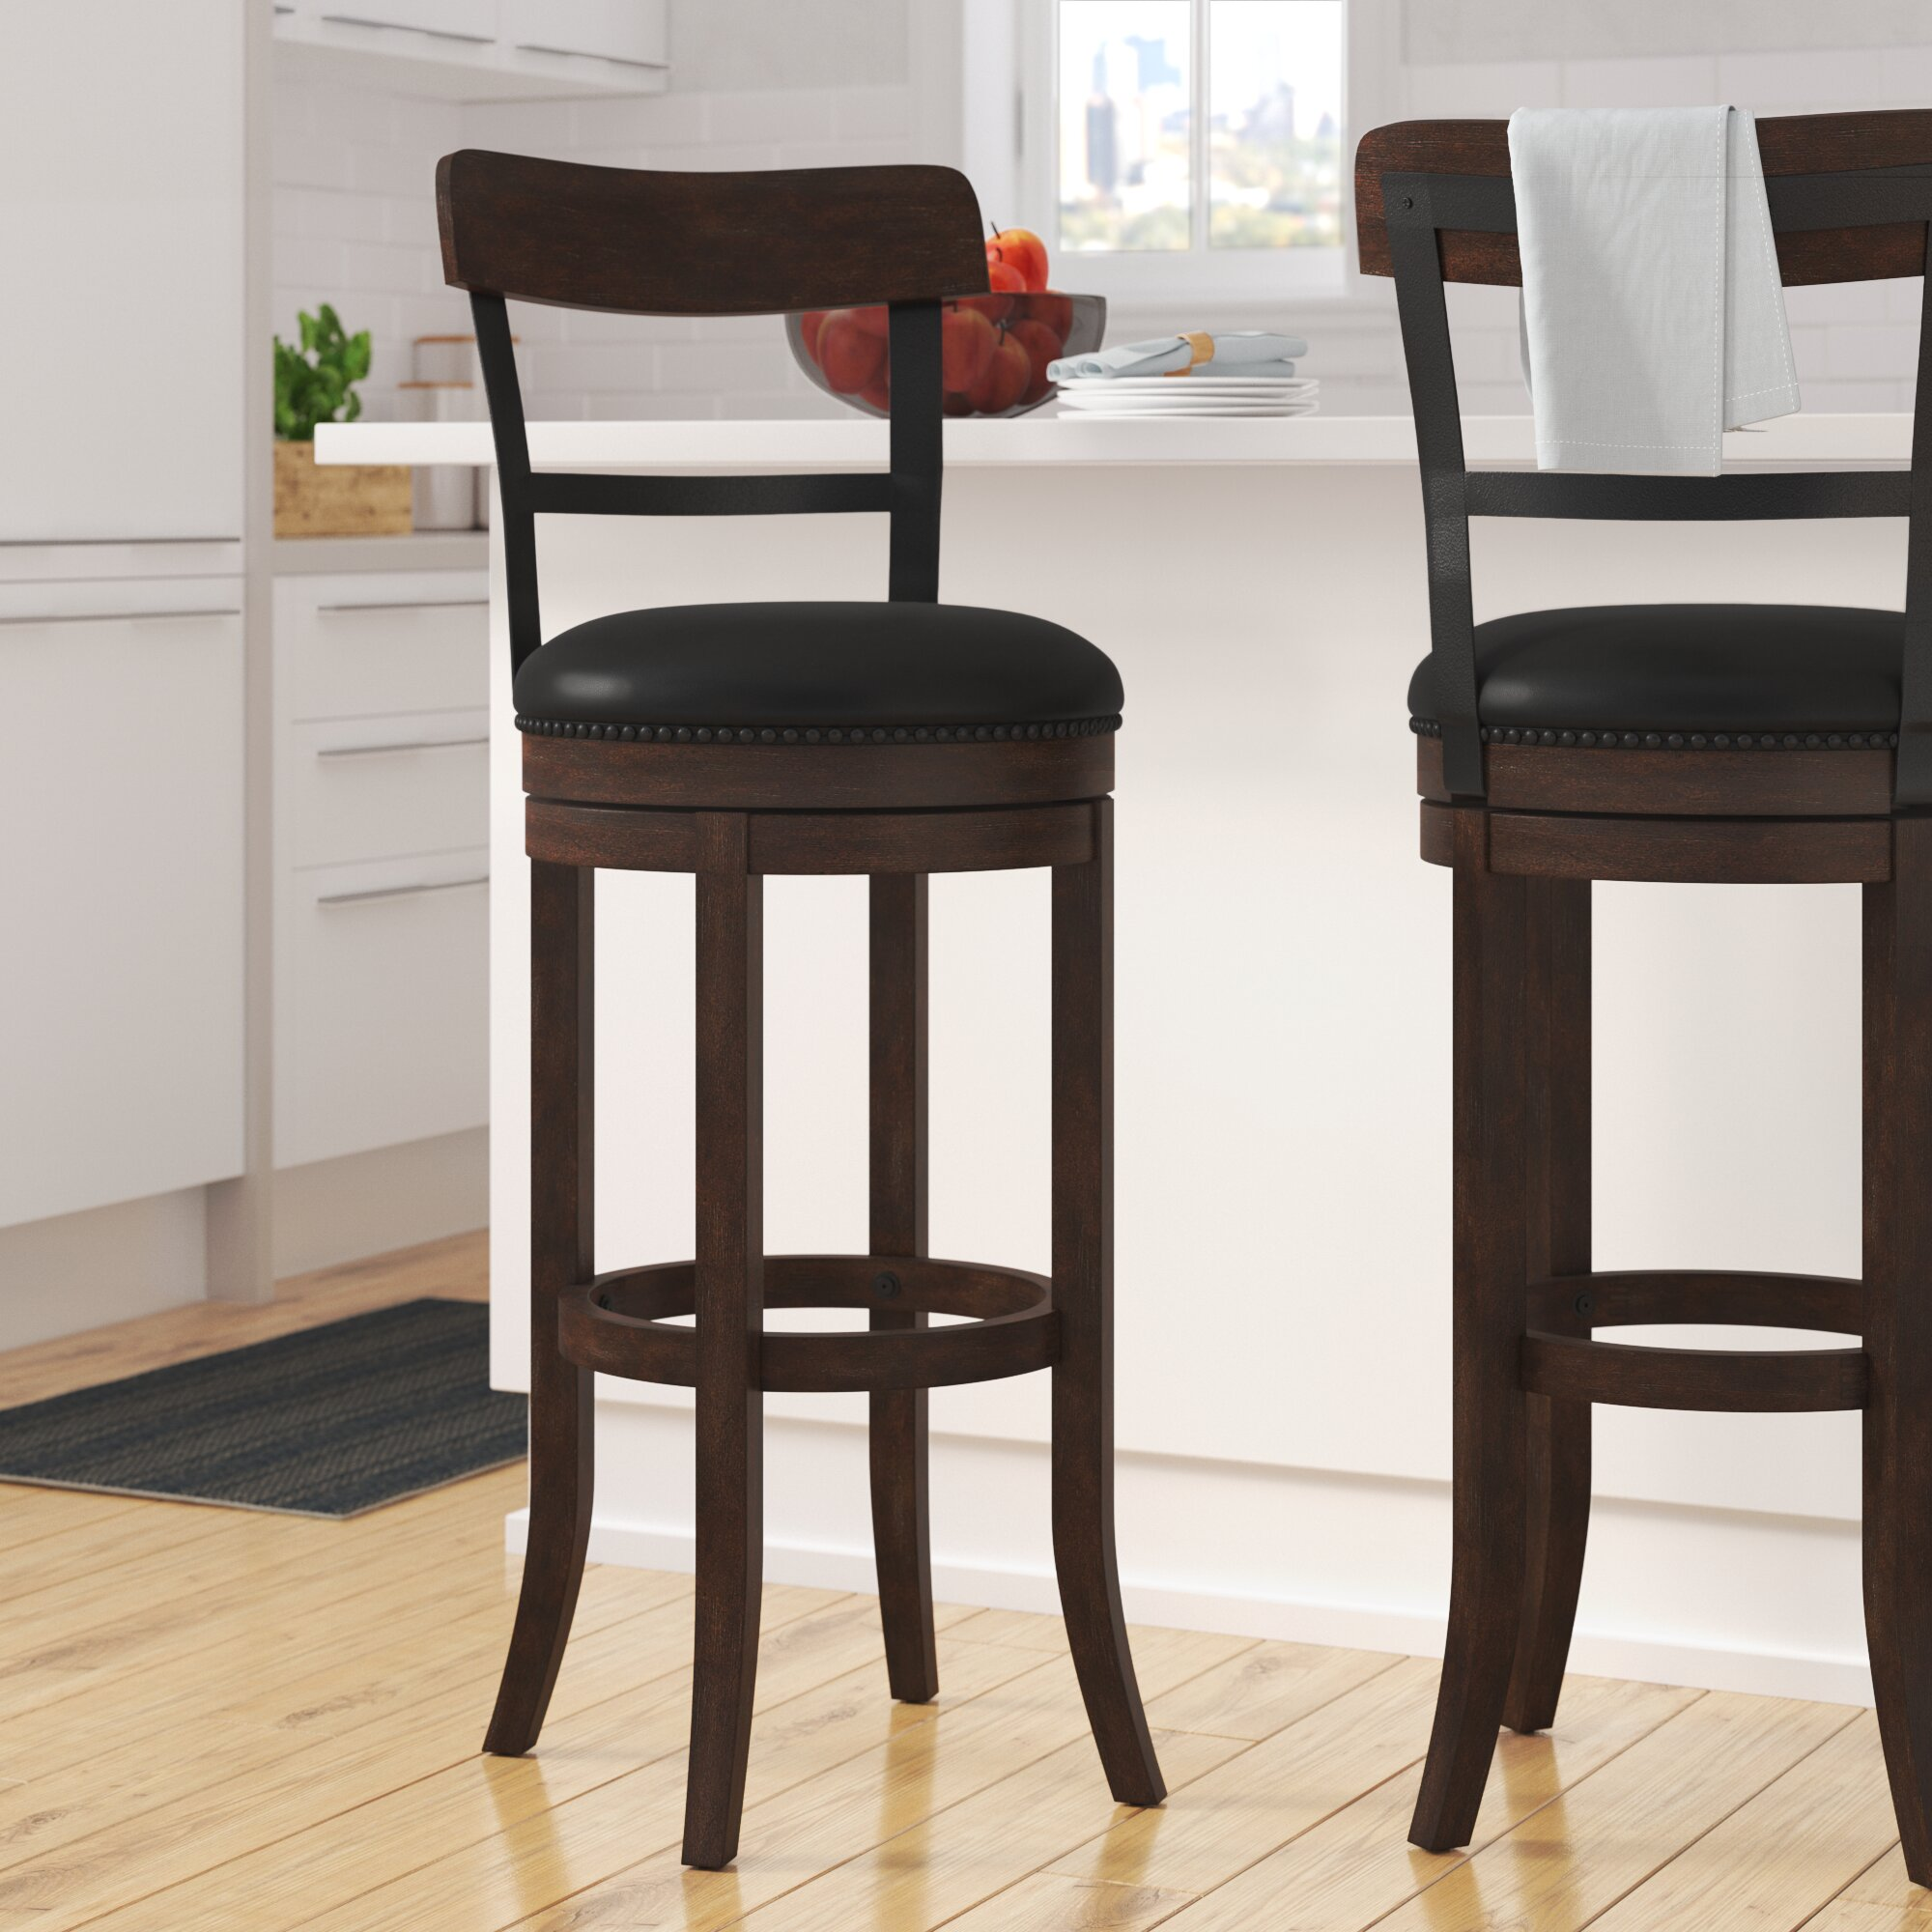 Darby Home Co Carondelet 30 Swivel Bar Stool Reviews Wayfair